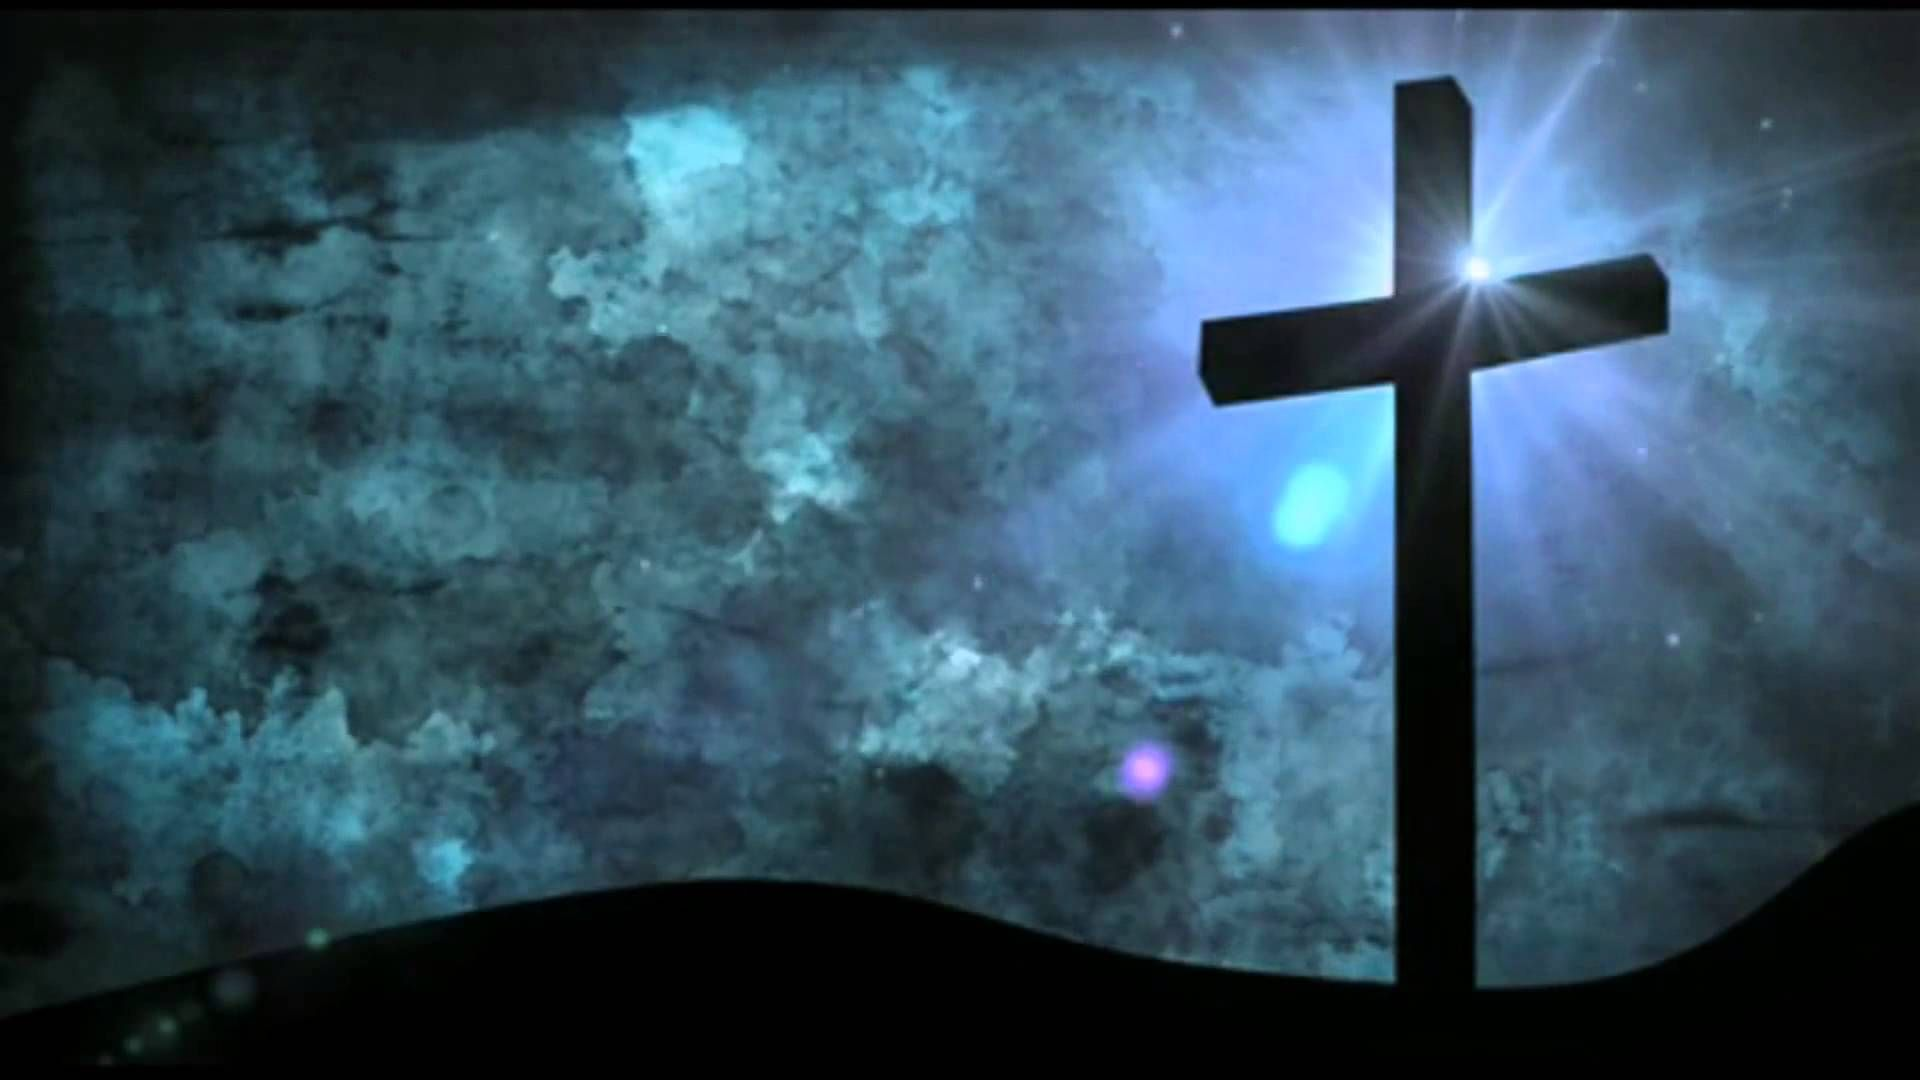 Pin by Nallely Treviño on Christmas Worship backgrounds